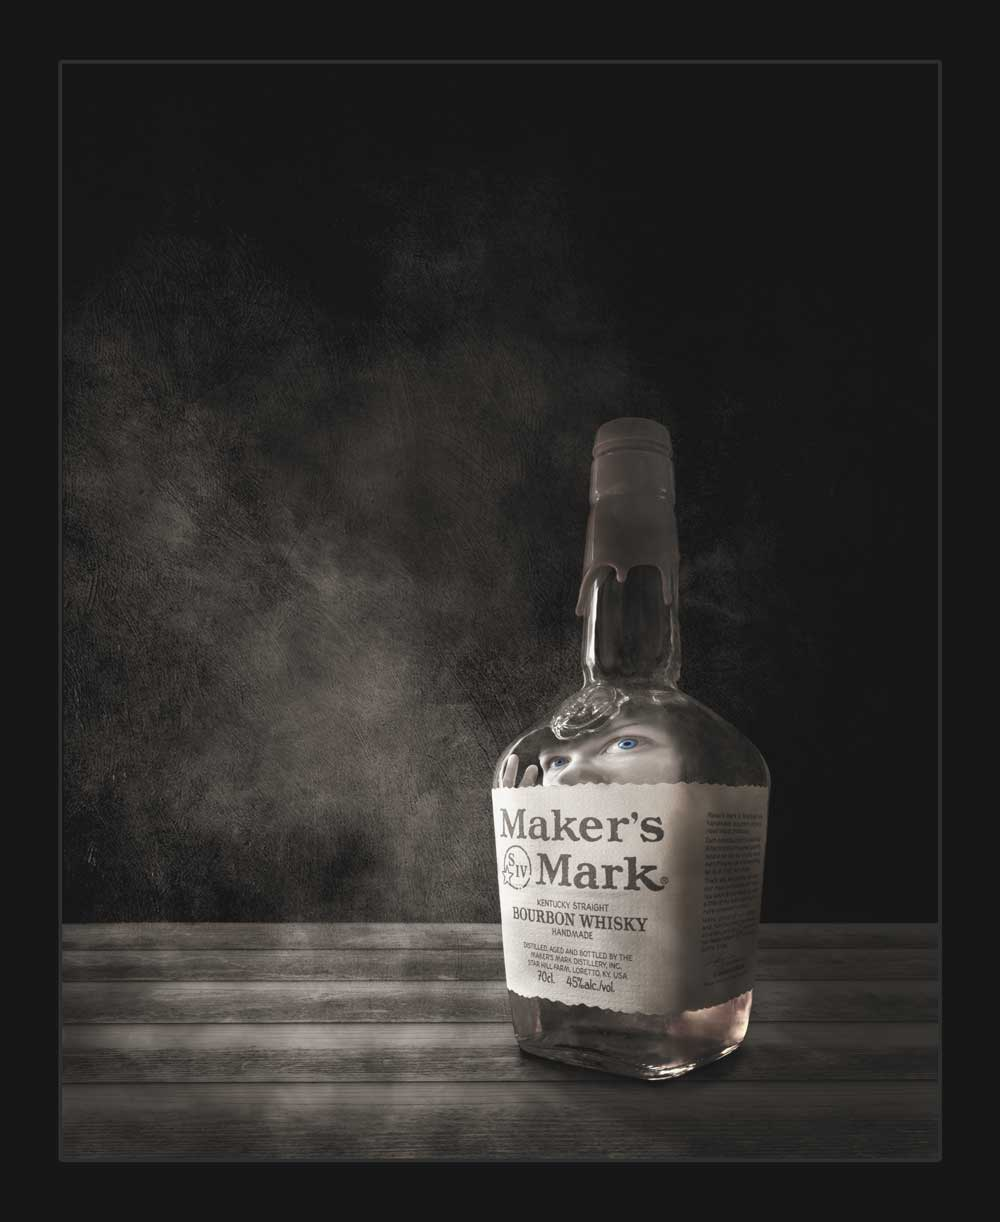 Creepy fine art image of a person trapped in a bottle of whisky. Created during the 2020 lockdown